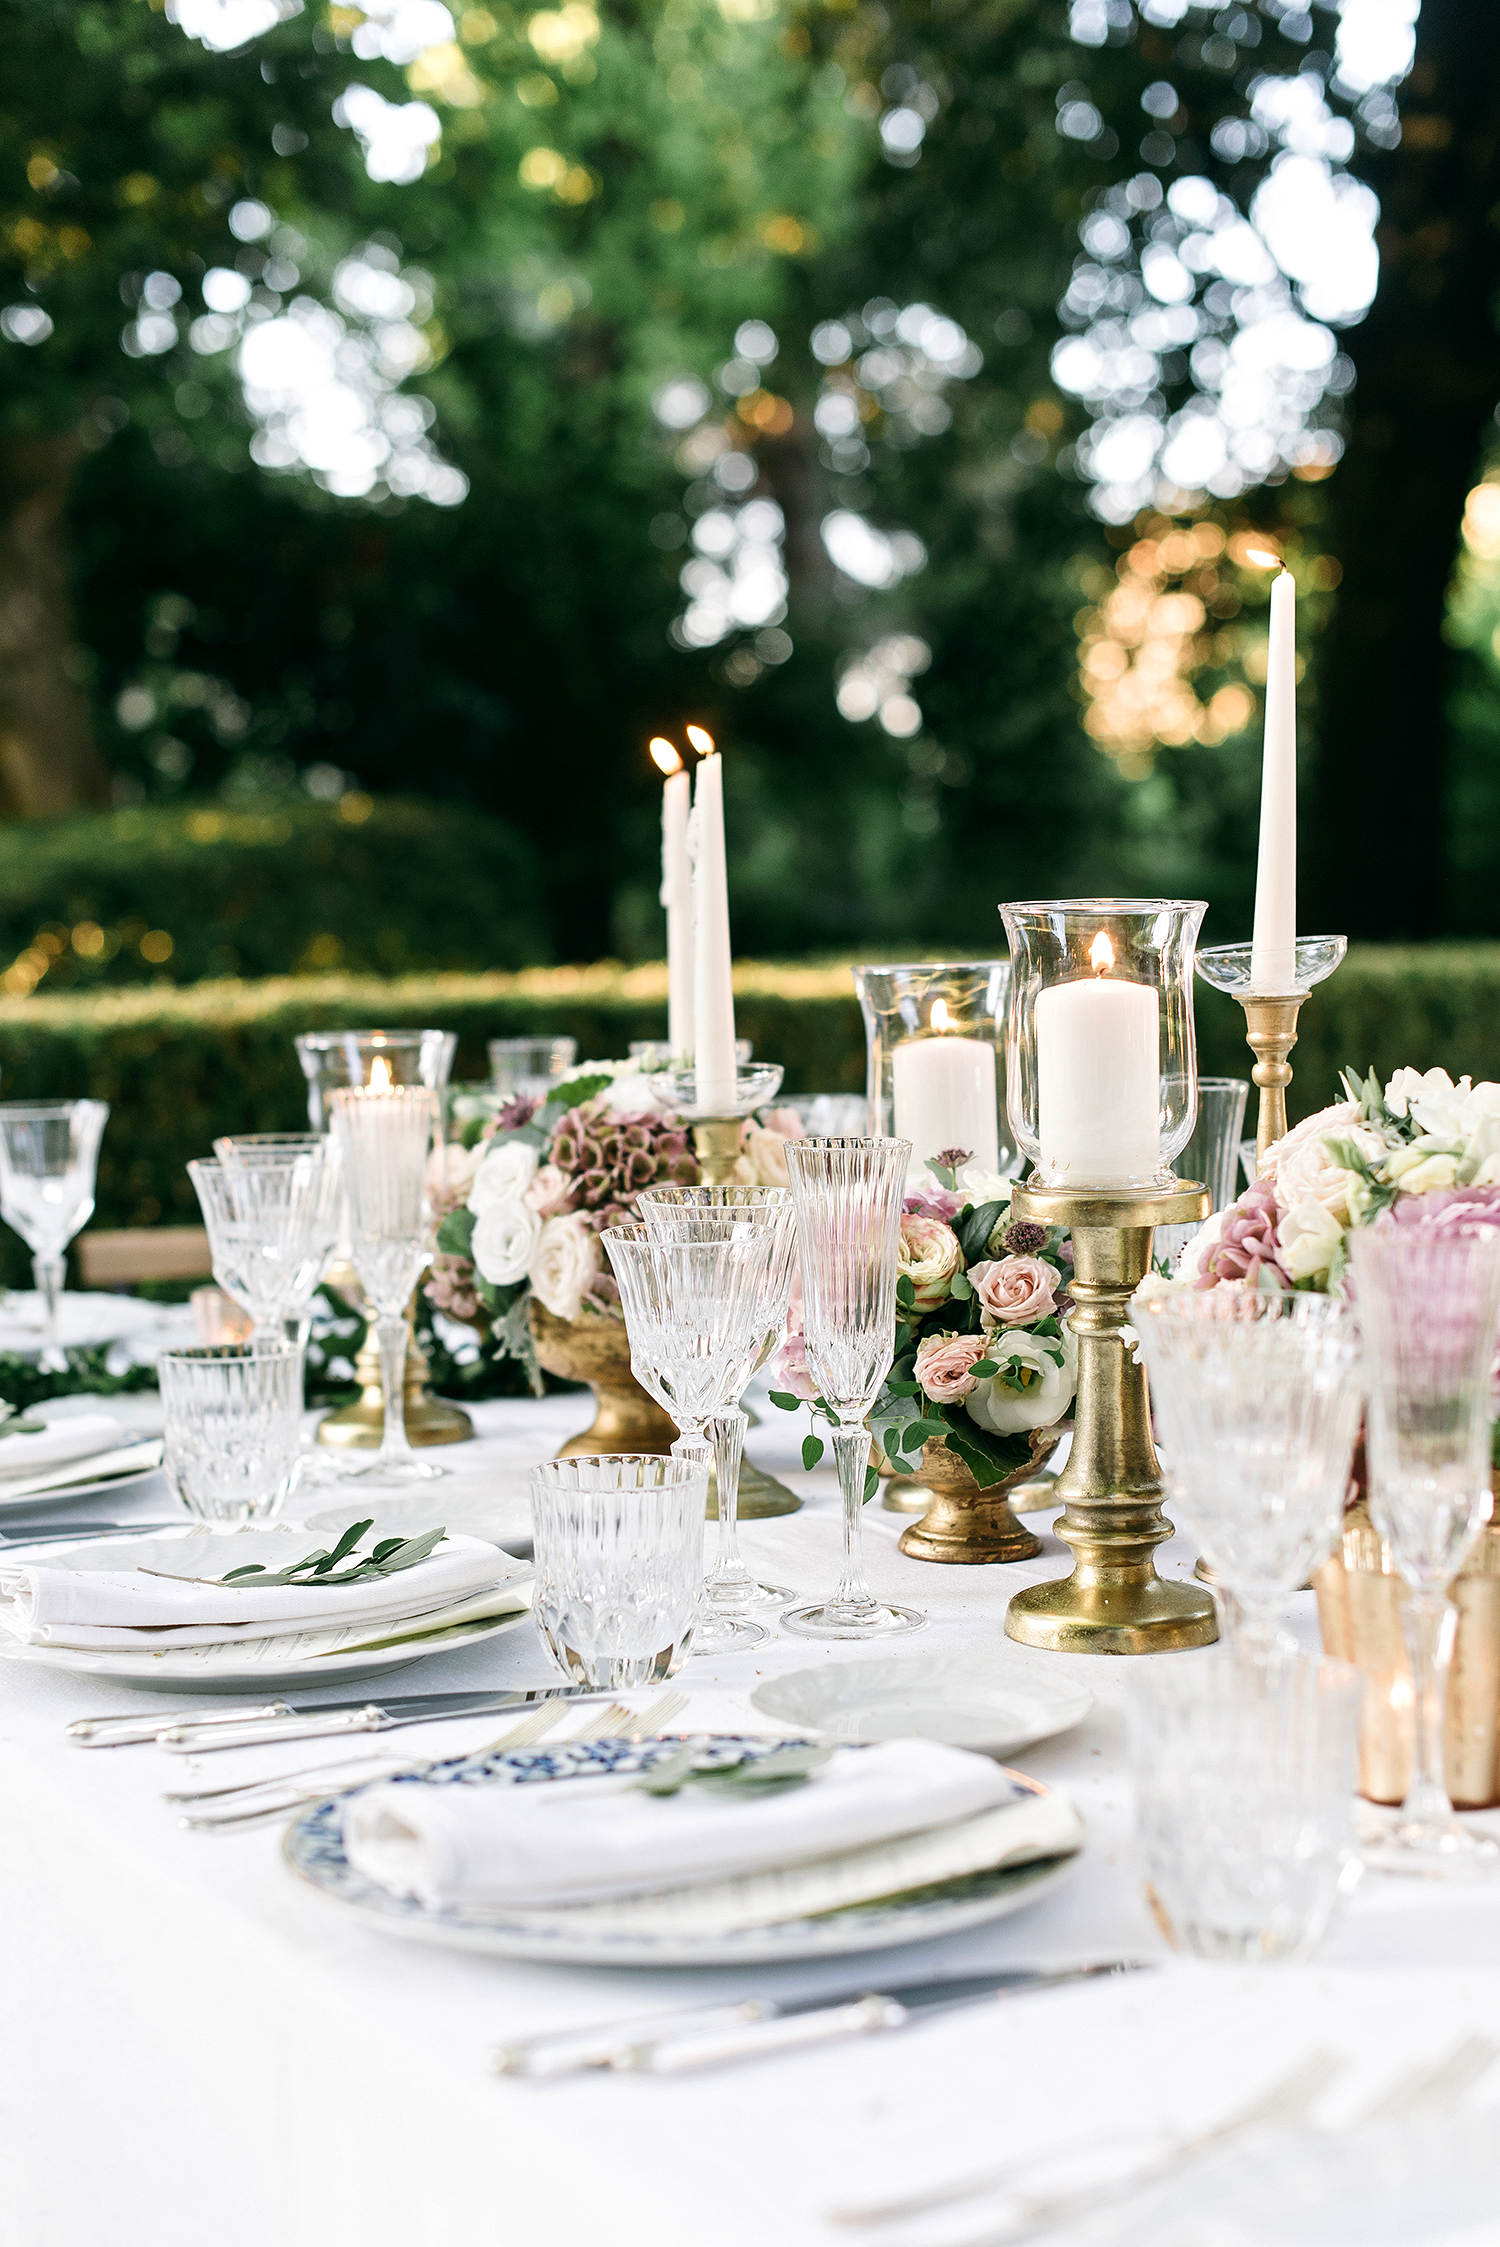 veronica mickias wedding table decor with gold accents